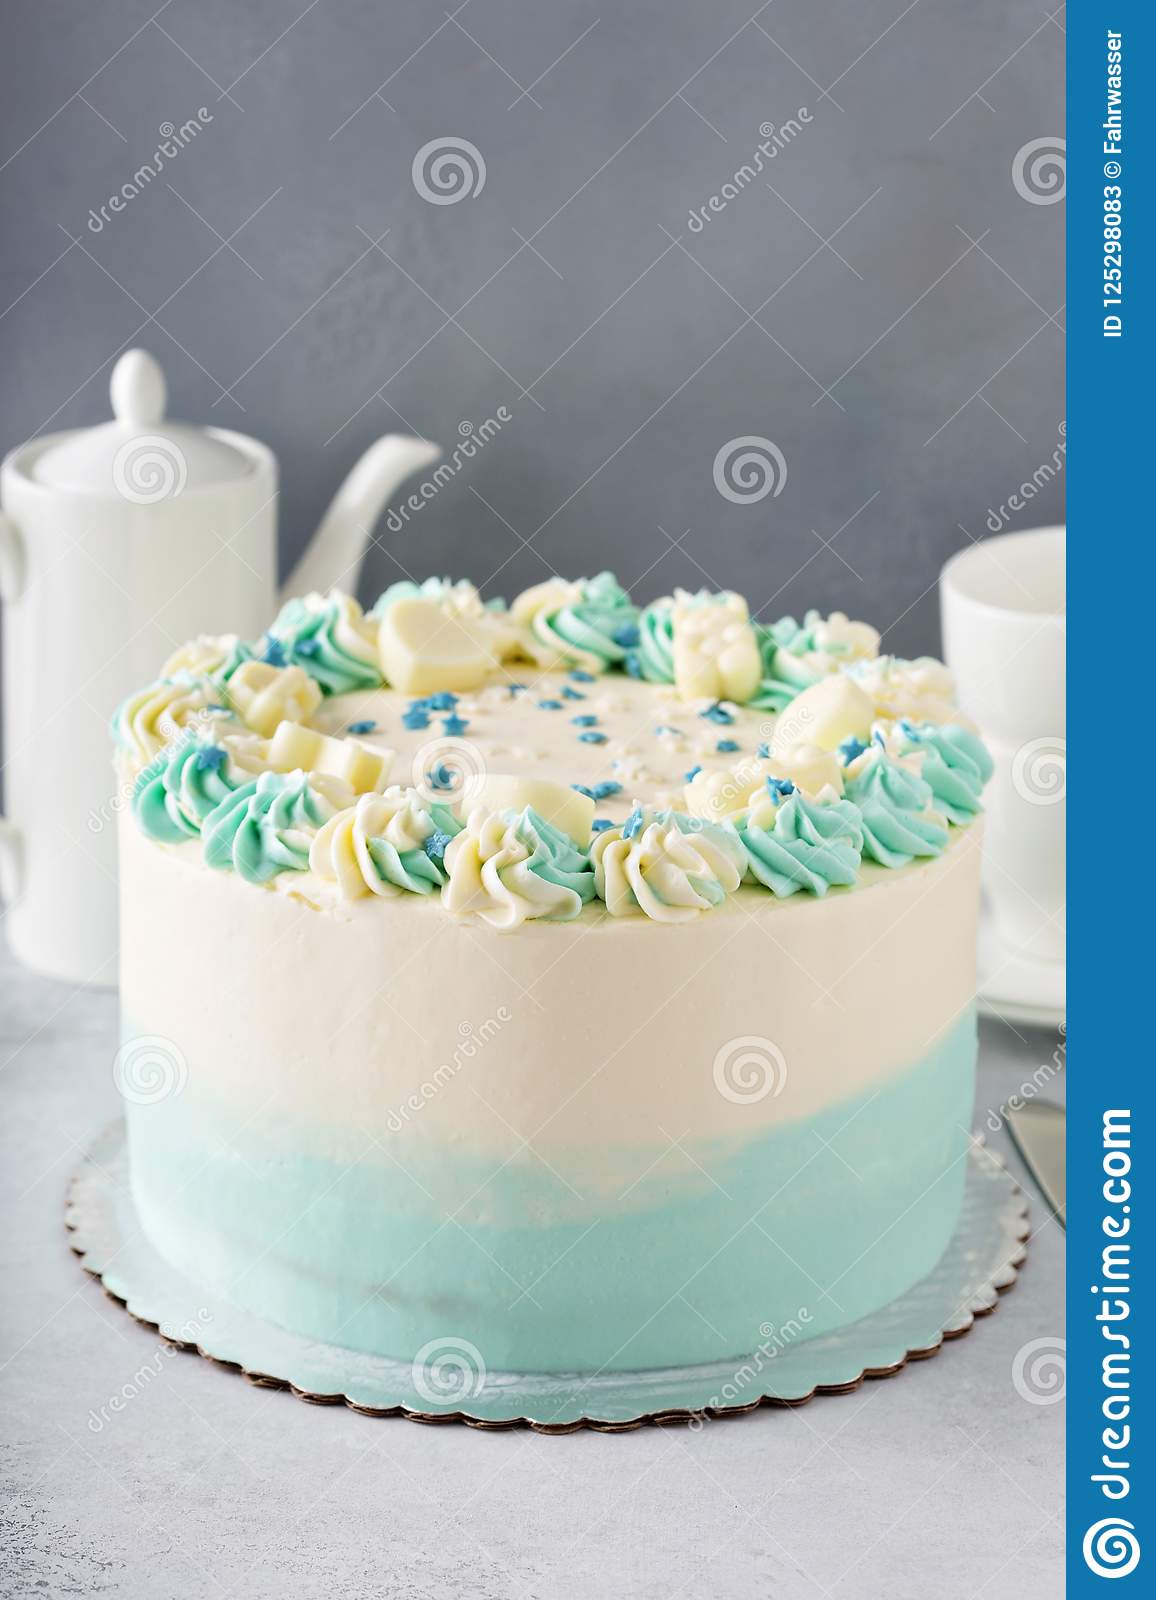 Simple Baby Shower Or Baptism Cake Stock Image Image Of Decoration